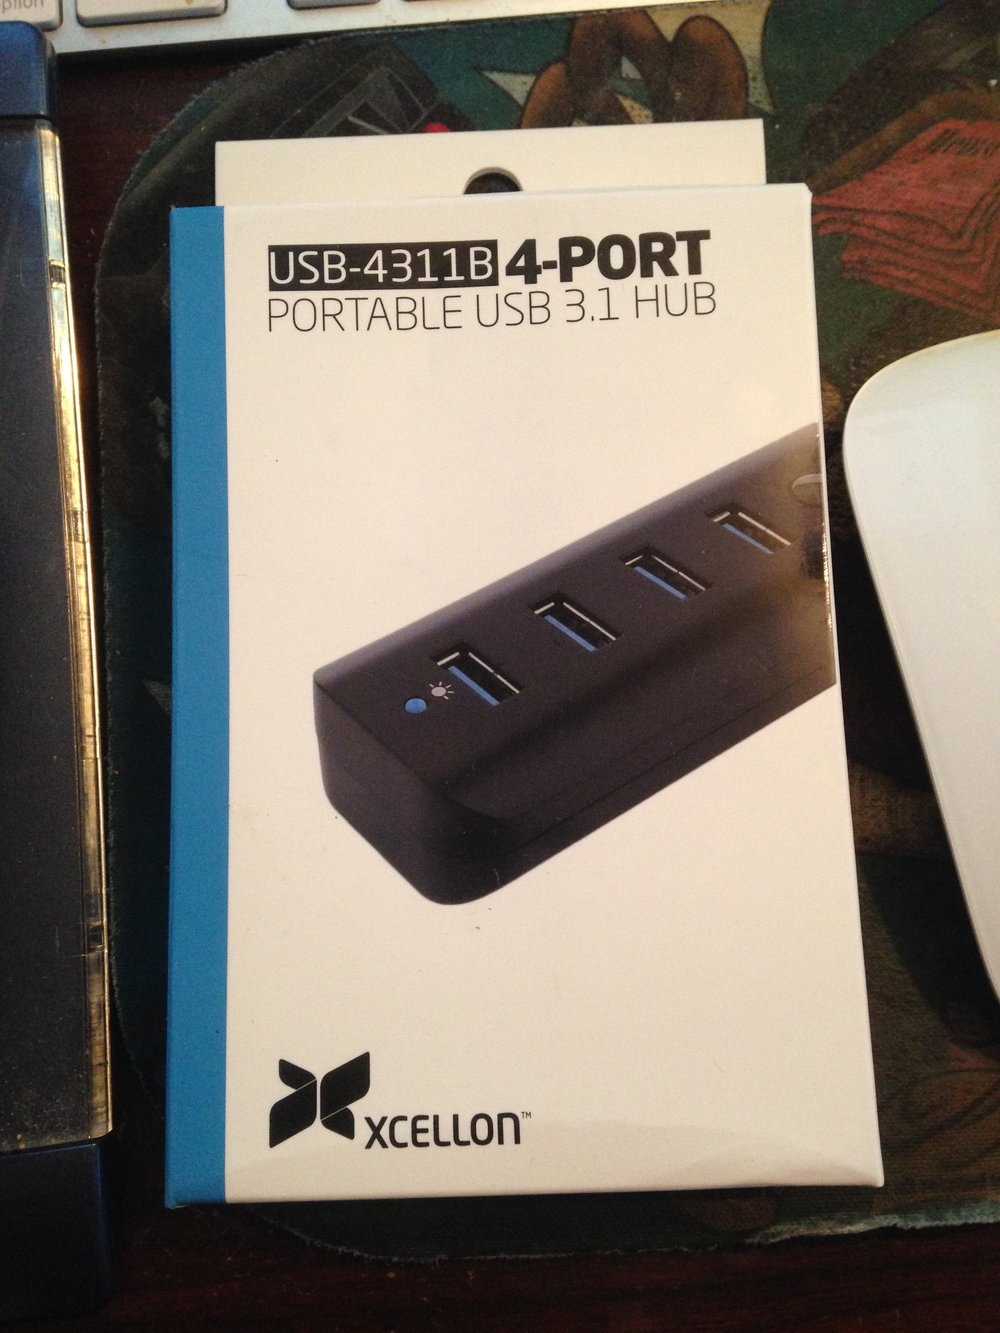 Last but not least is a new USB hub.. When doing my whole office organization thing I realized that my current USB hub was only USB 2 so with the new USB 3 hub my card transfers should be a tad faster!